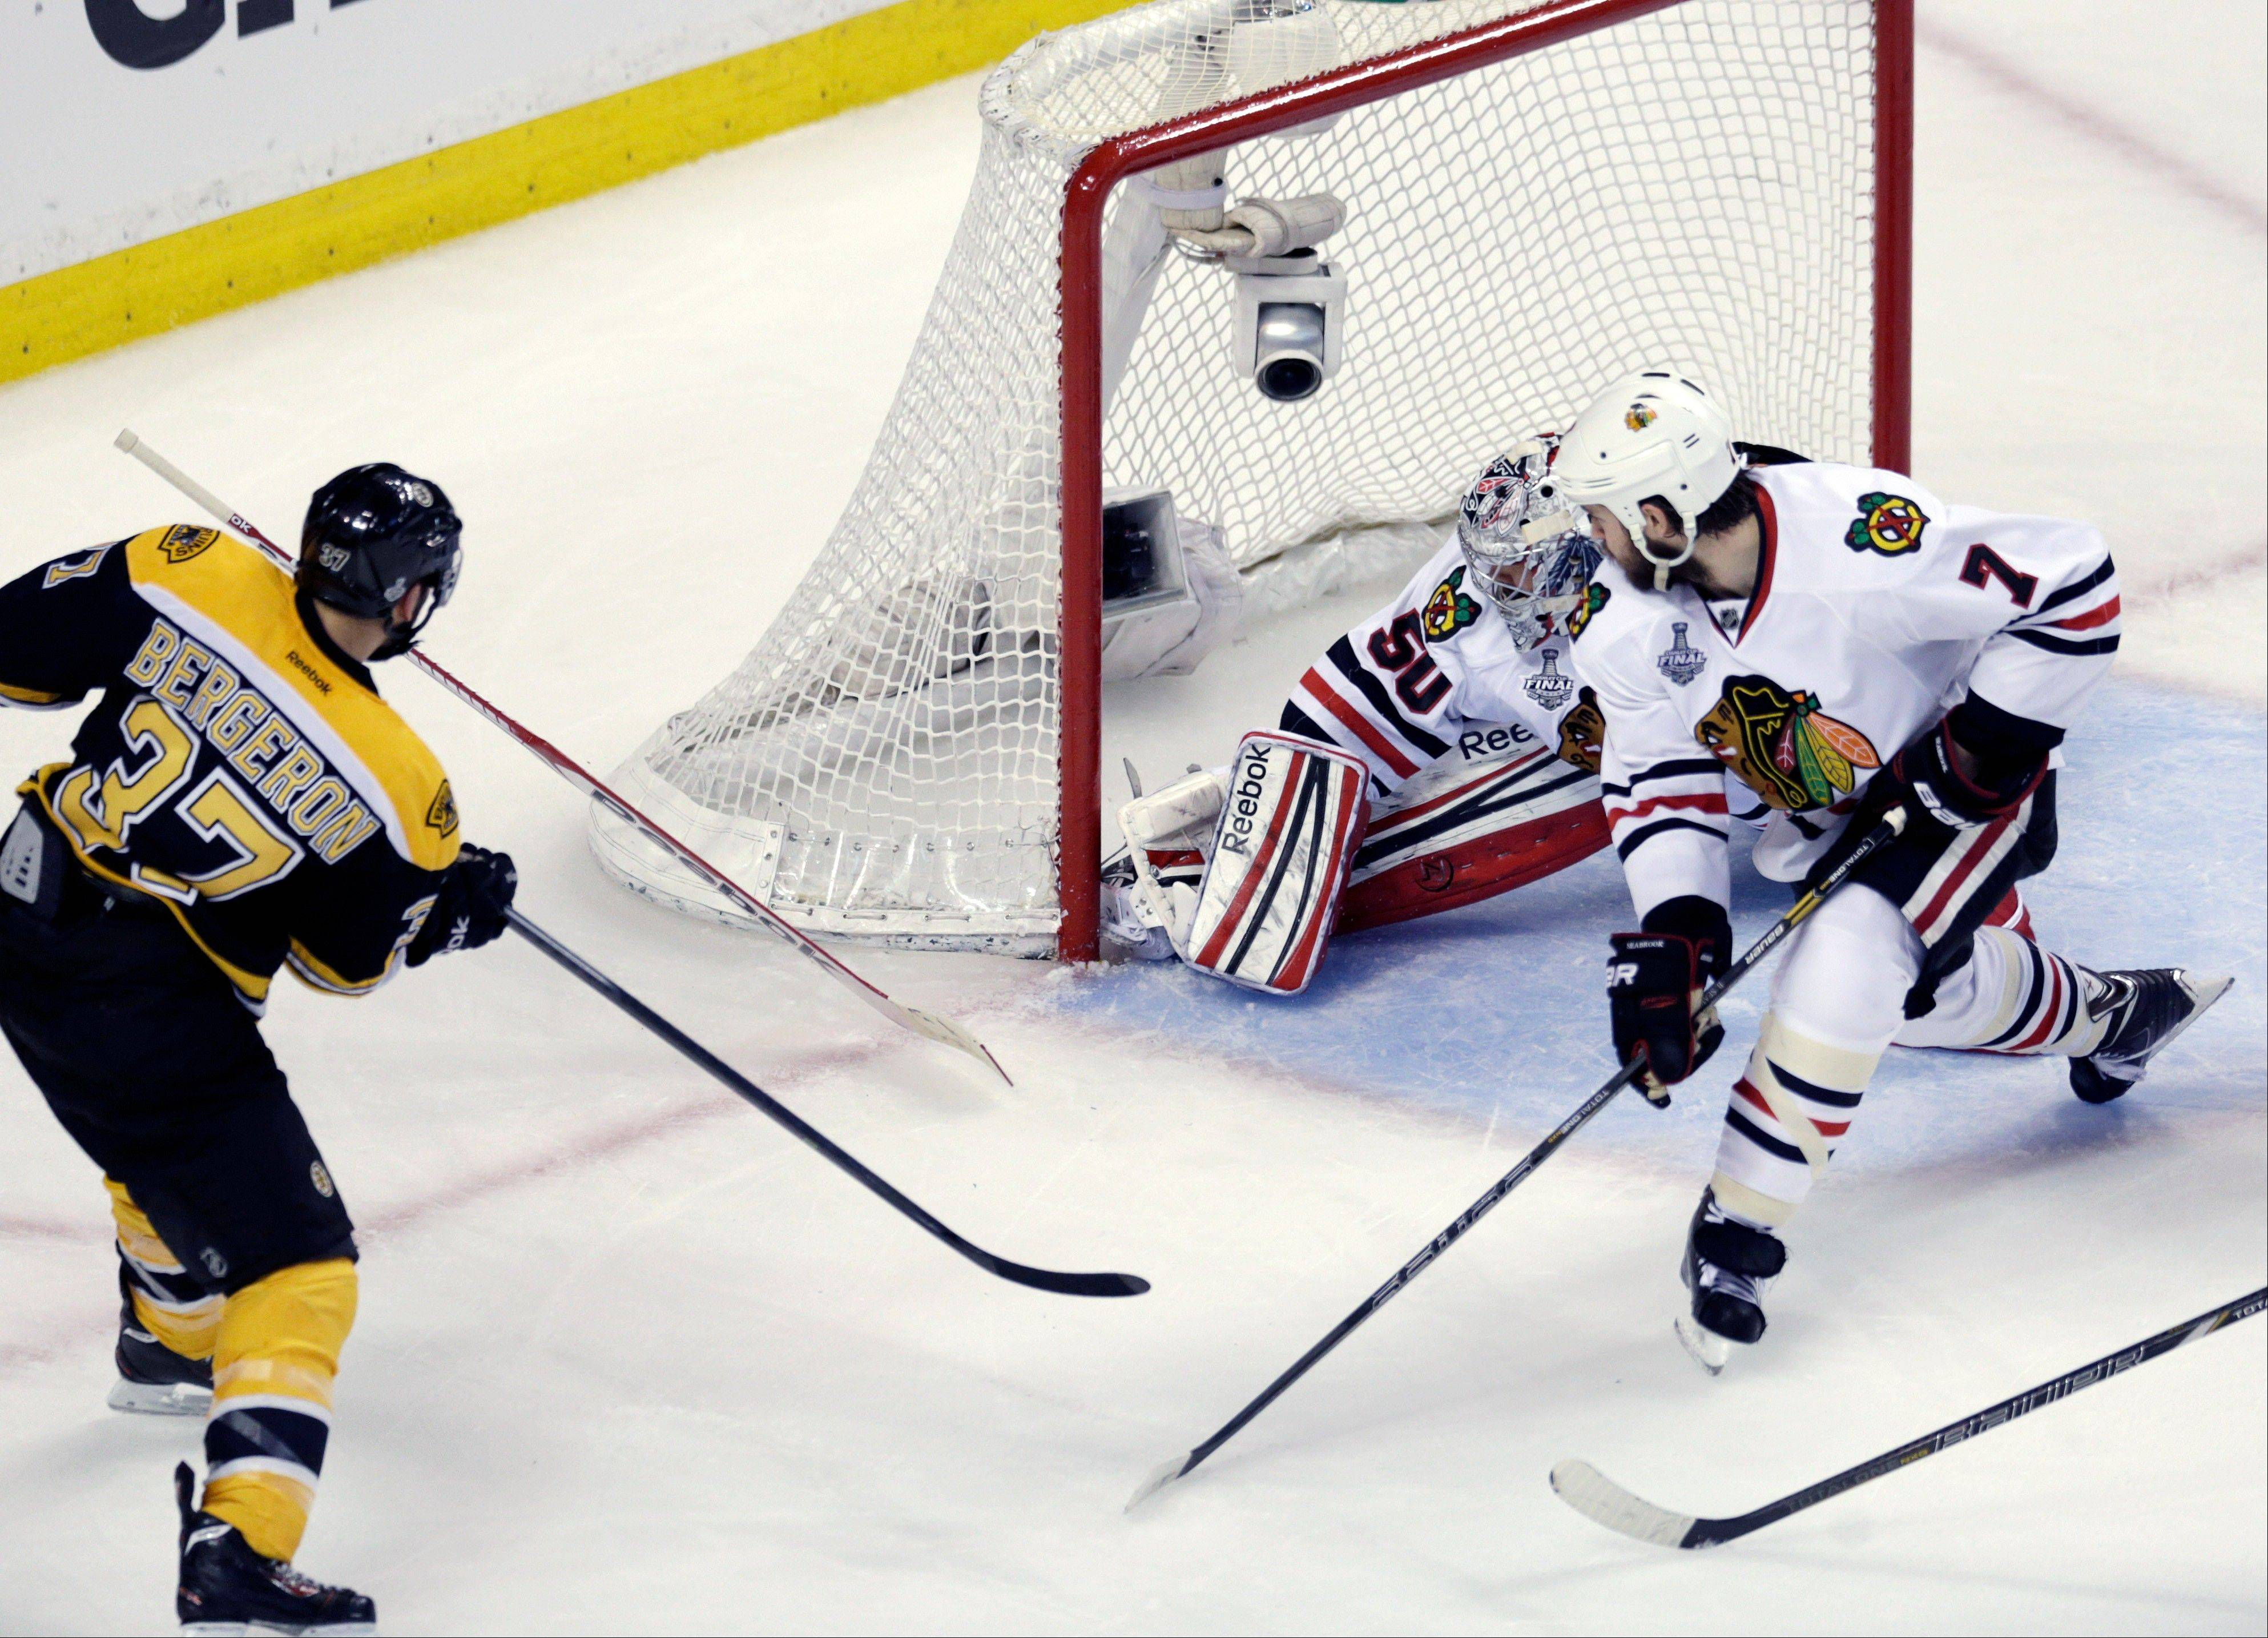 Boston Bruins center Patrice Bergeron (37) scores a goal past Chicago Blackhawks goalie Corey Crawford (50) and defenseman Brent Seabrook (7) during the second period in Game 3 of the NHL hockey Stanley Cup Finals.